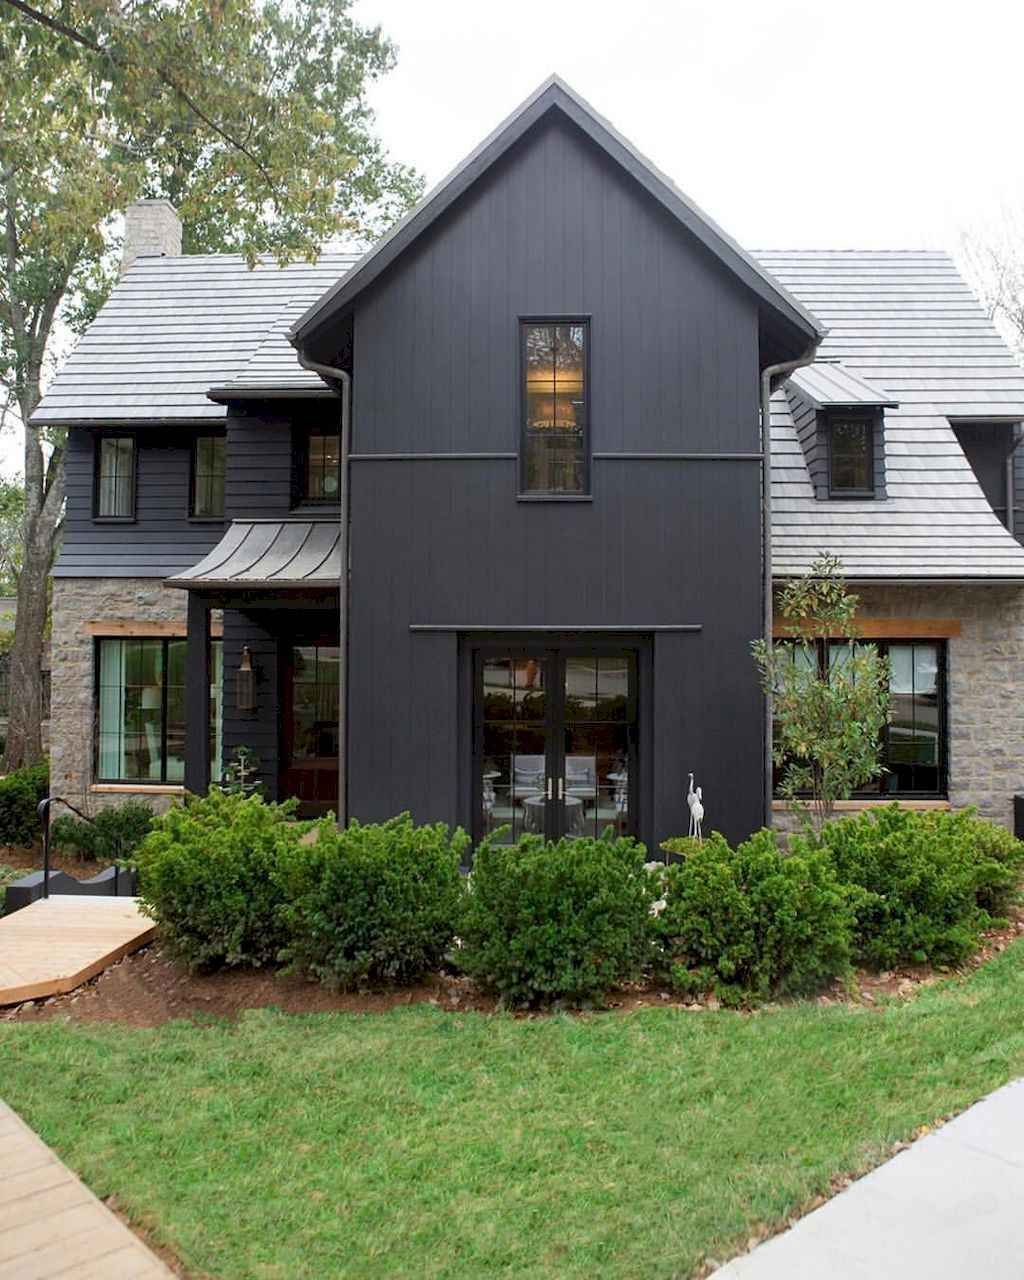 70 Awesome Modern Farmhouse Exterior Design Ideas Farmhouse Exterior Colors Farmhouse Exterior Black House Exterior